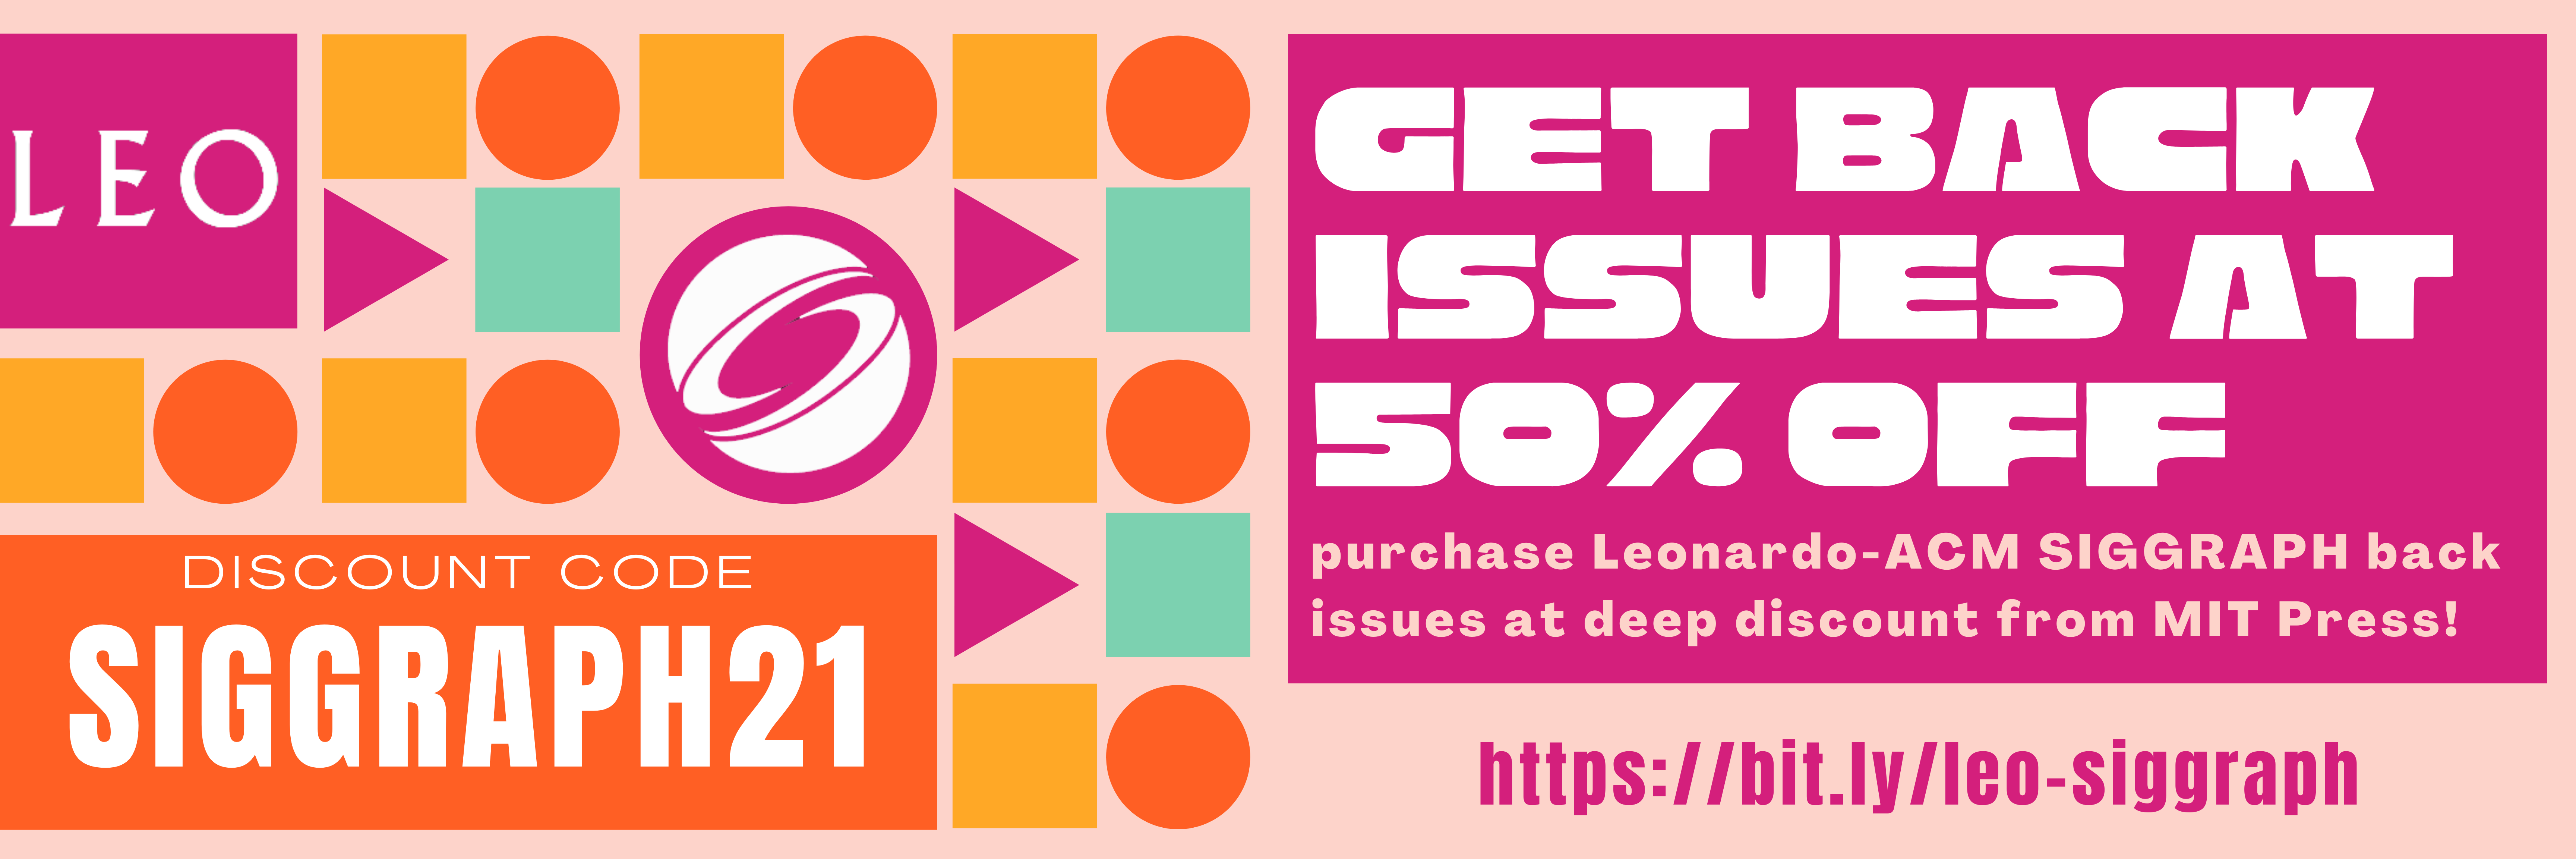 50% Back Issue Sale Banner